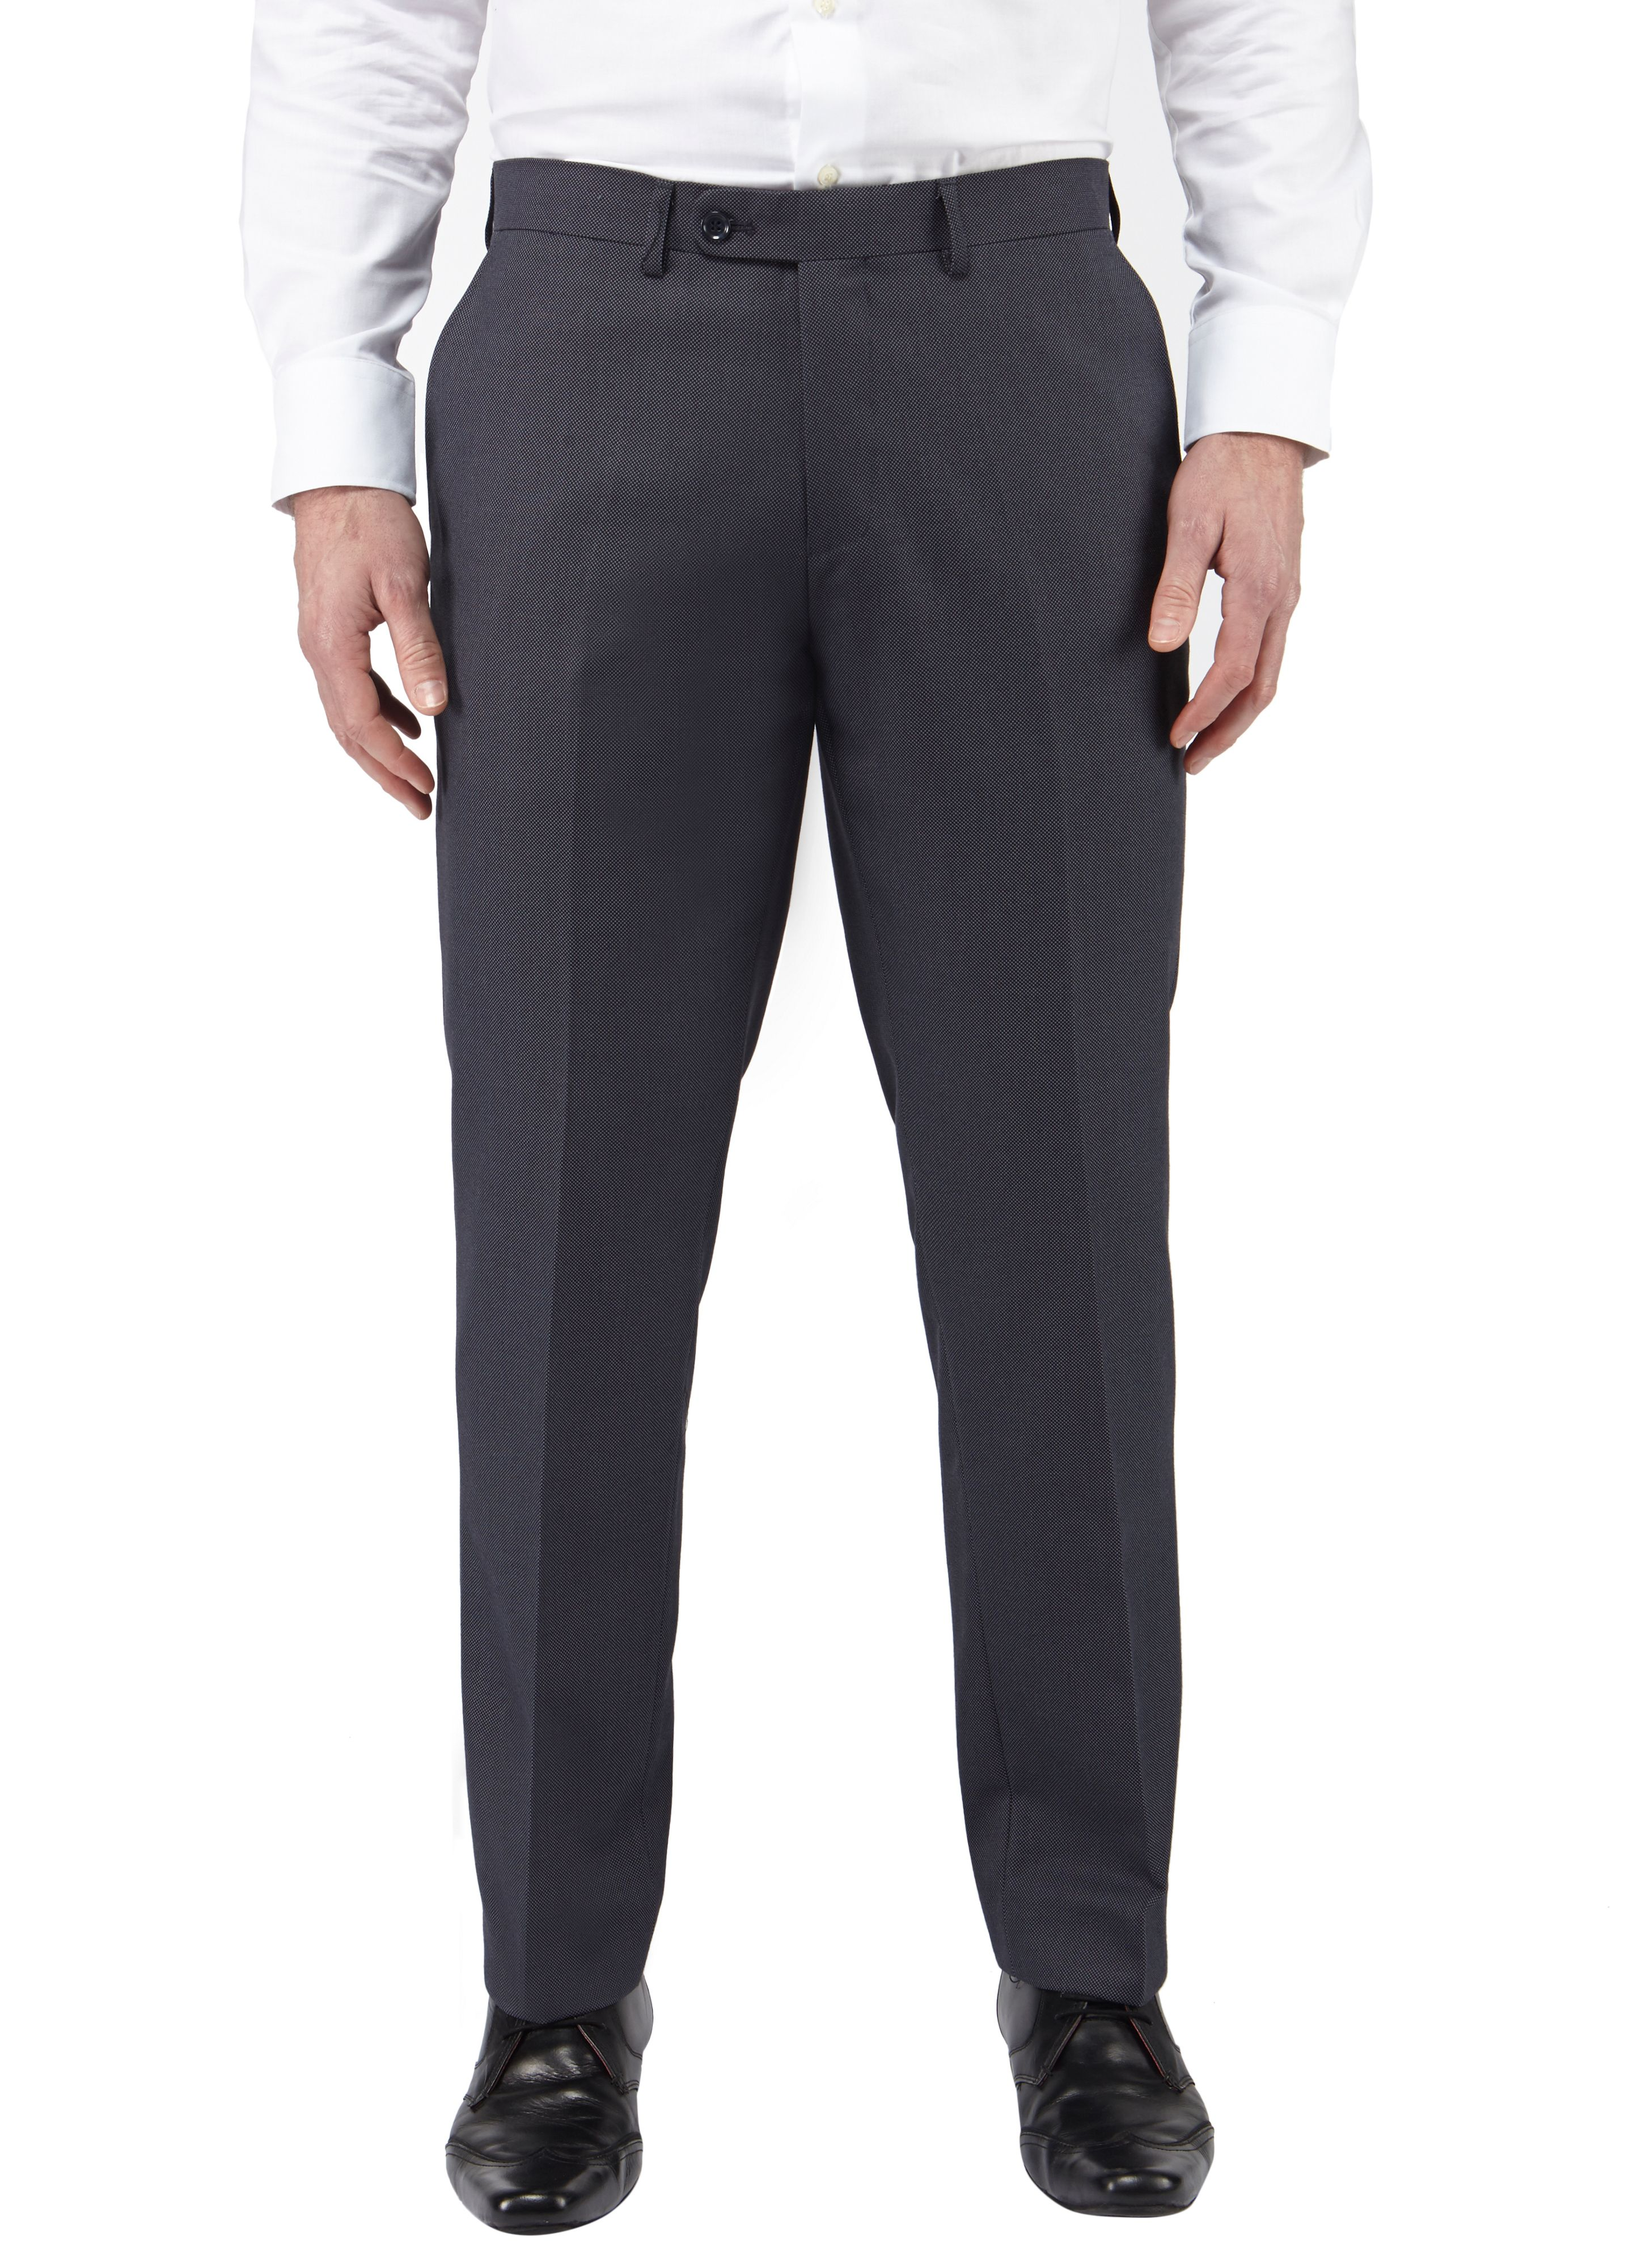 Shadwell classic formal suit trouser